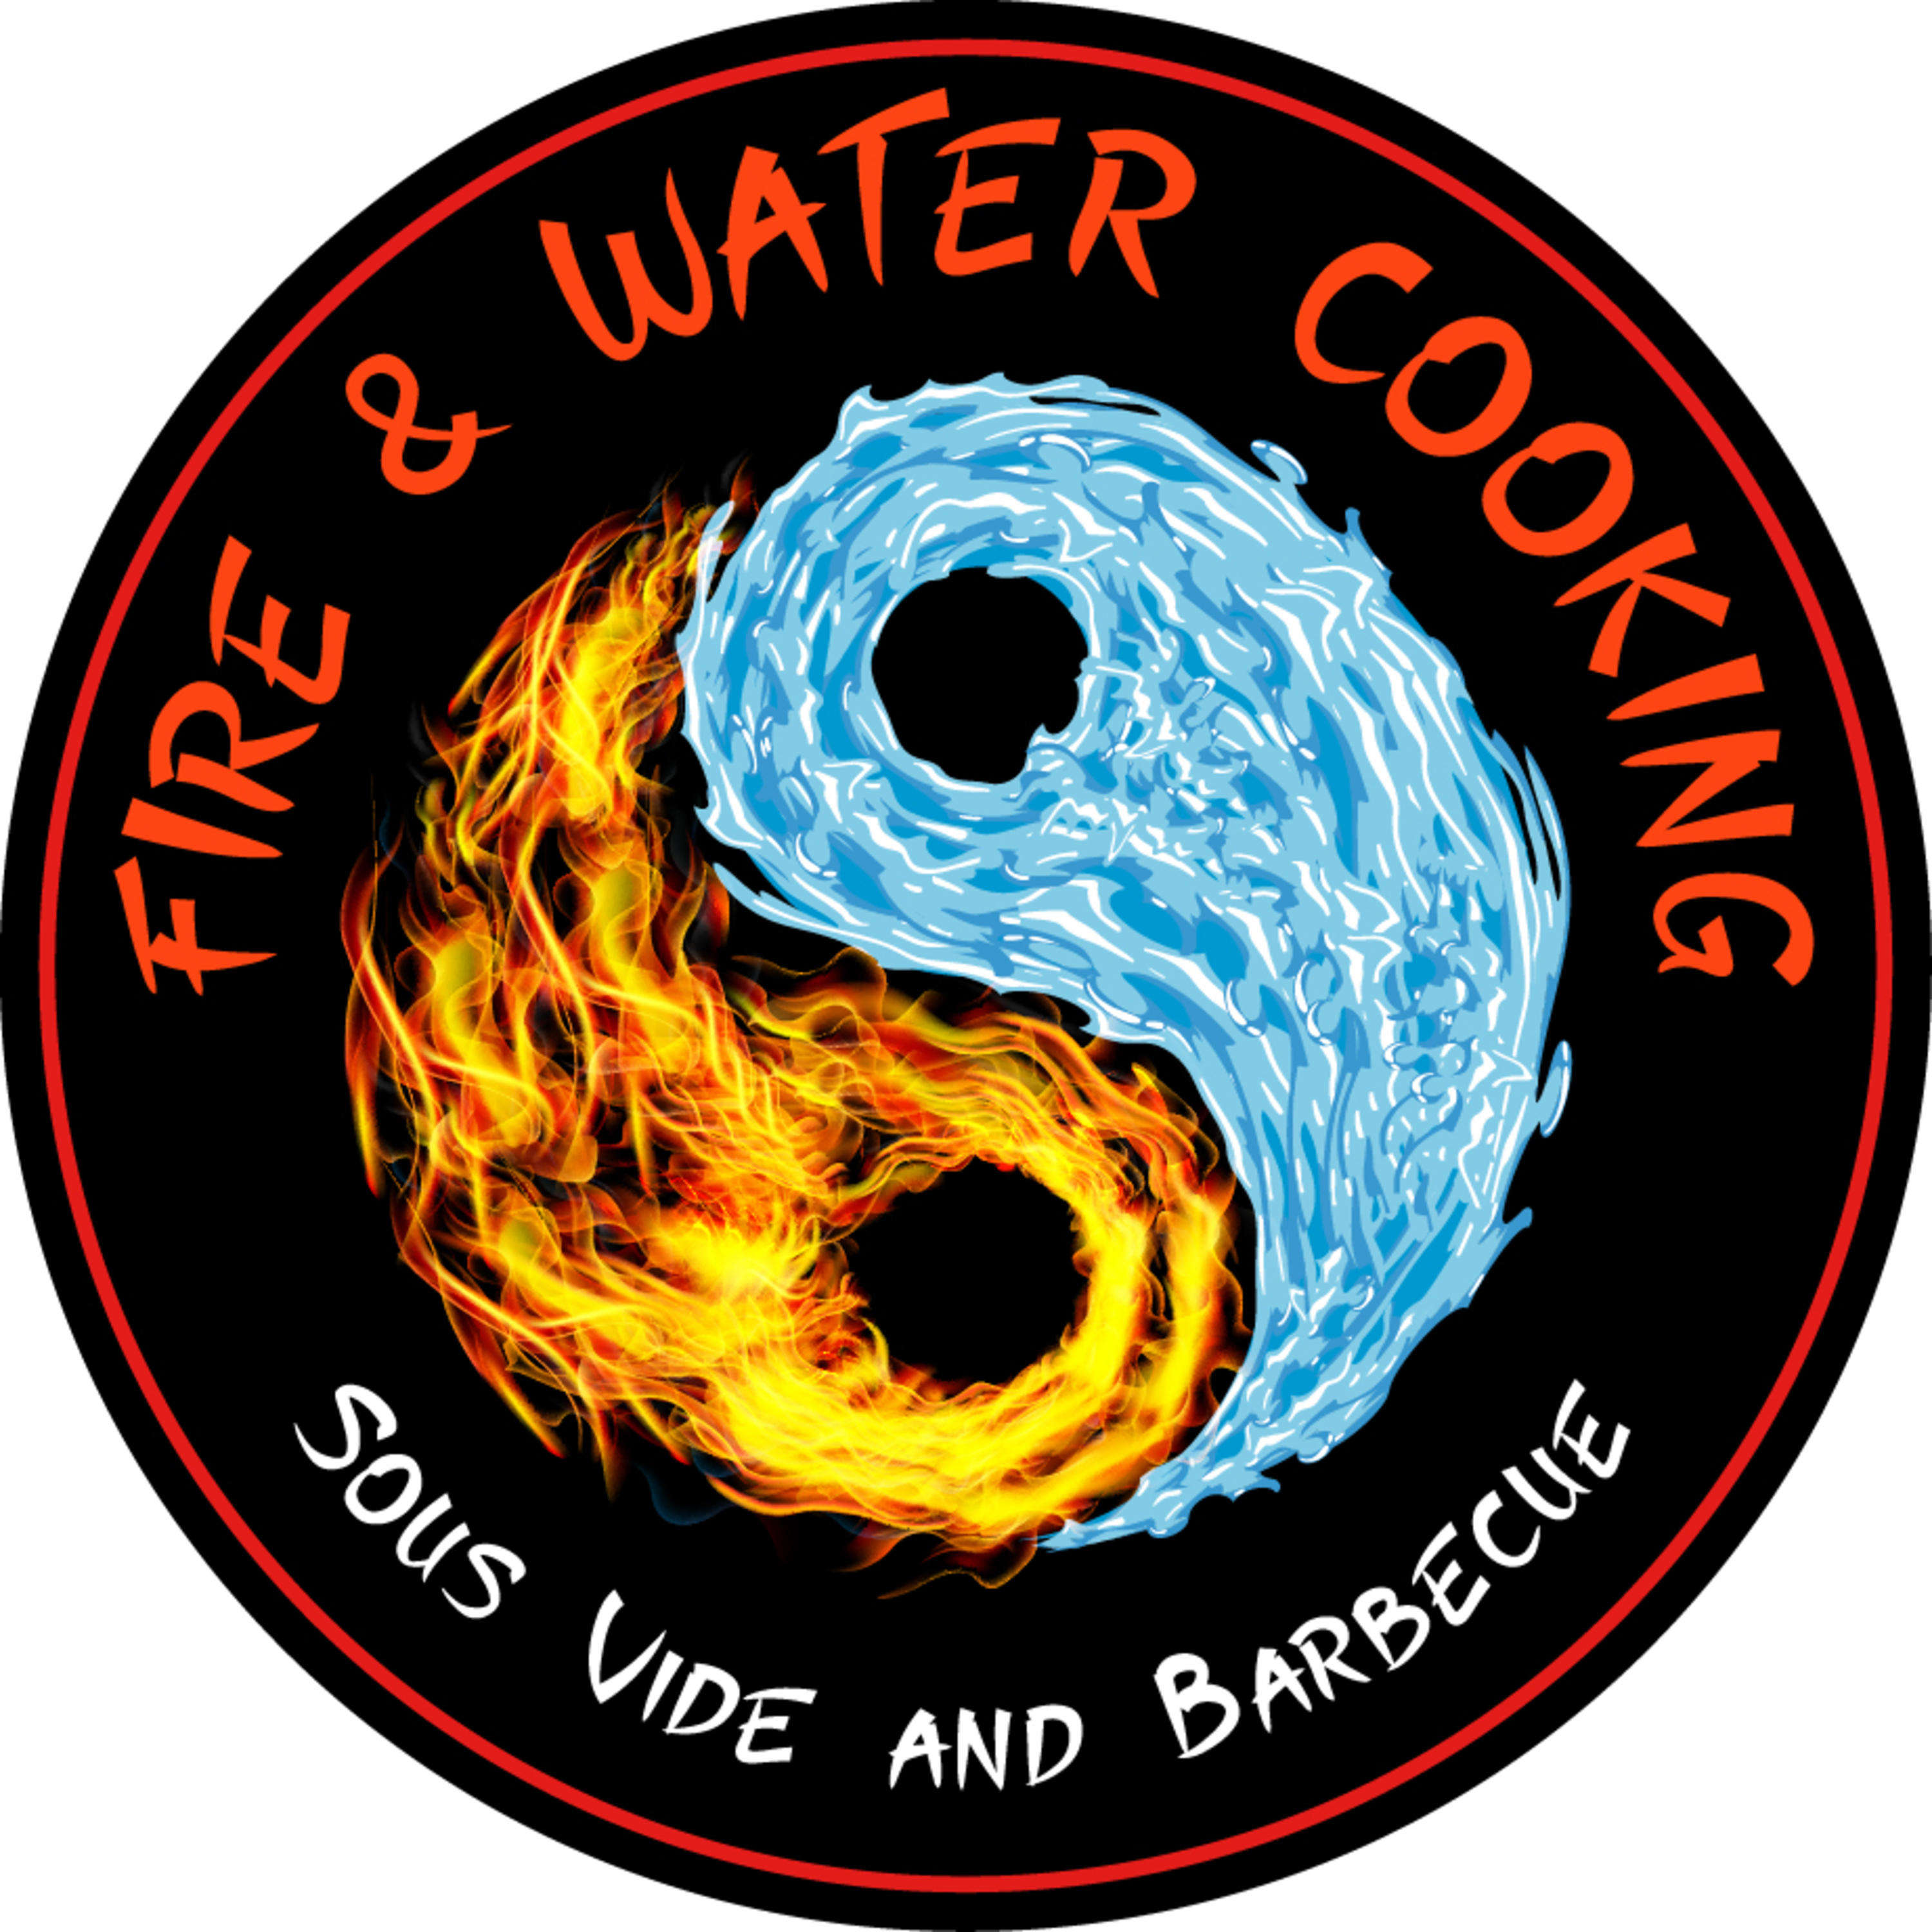 Fire and Water Cooking – The Fusion of Barbecue, Grilling and Sous Vide